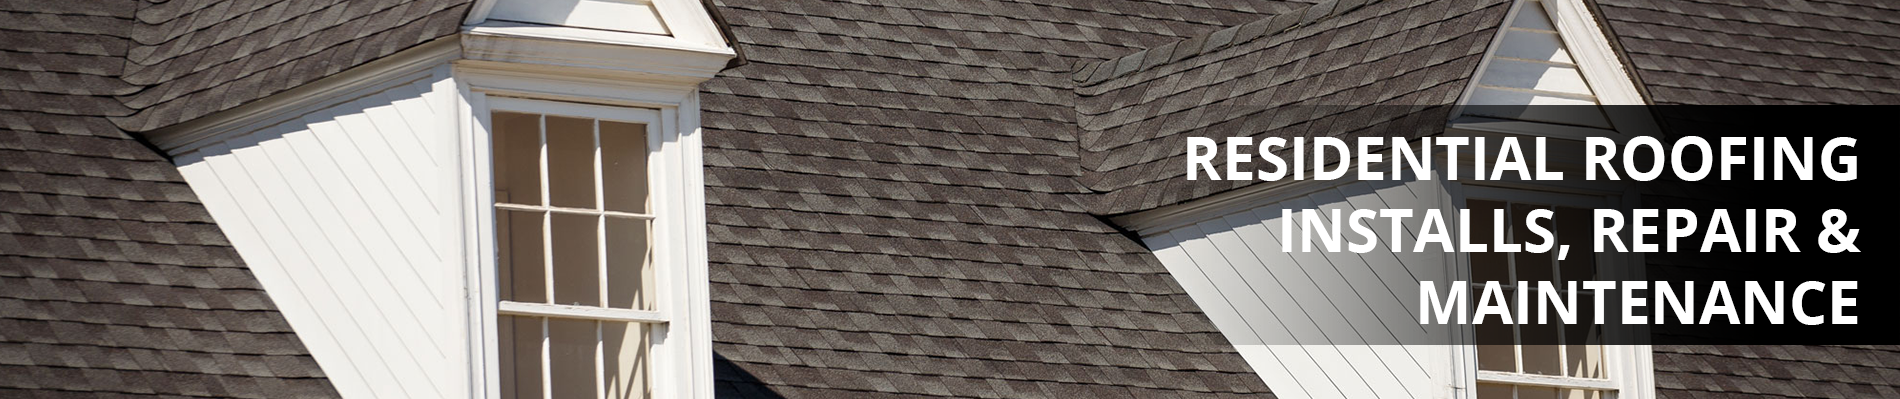 Residential Roofing Installs, Repair and Maintenance